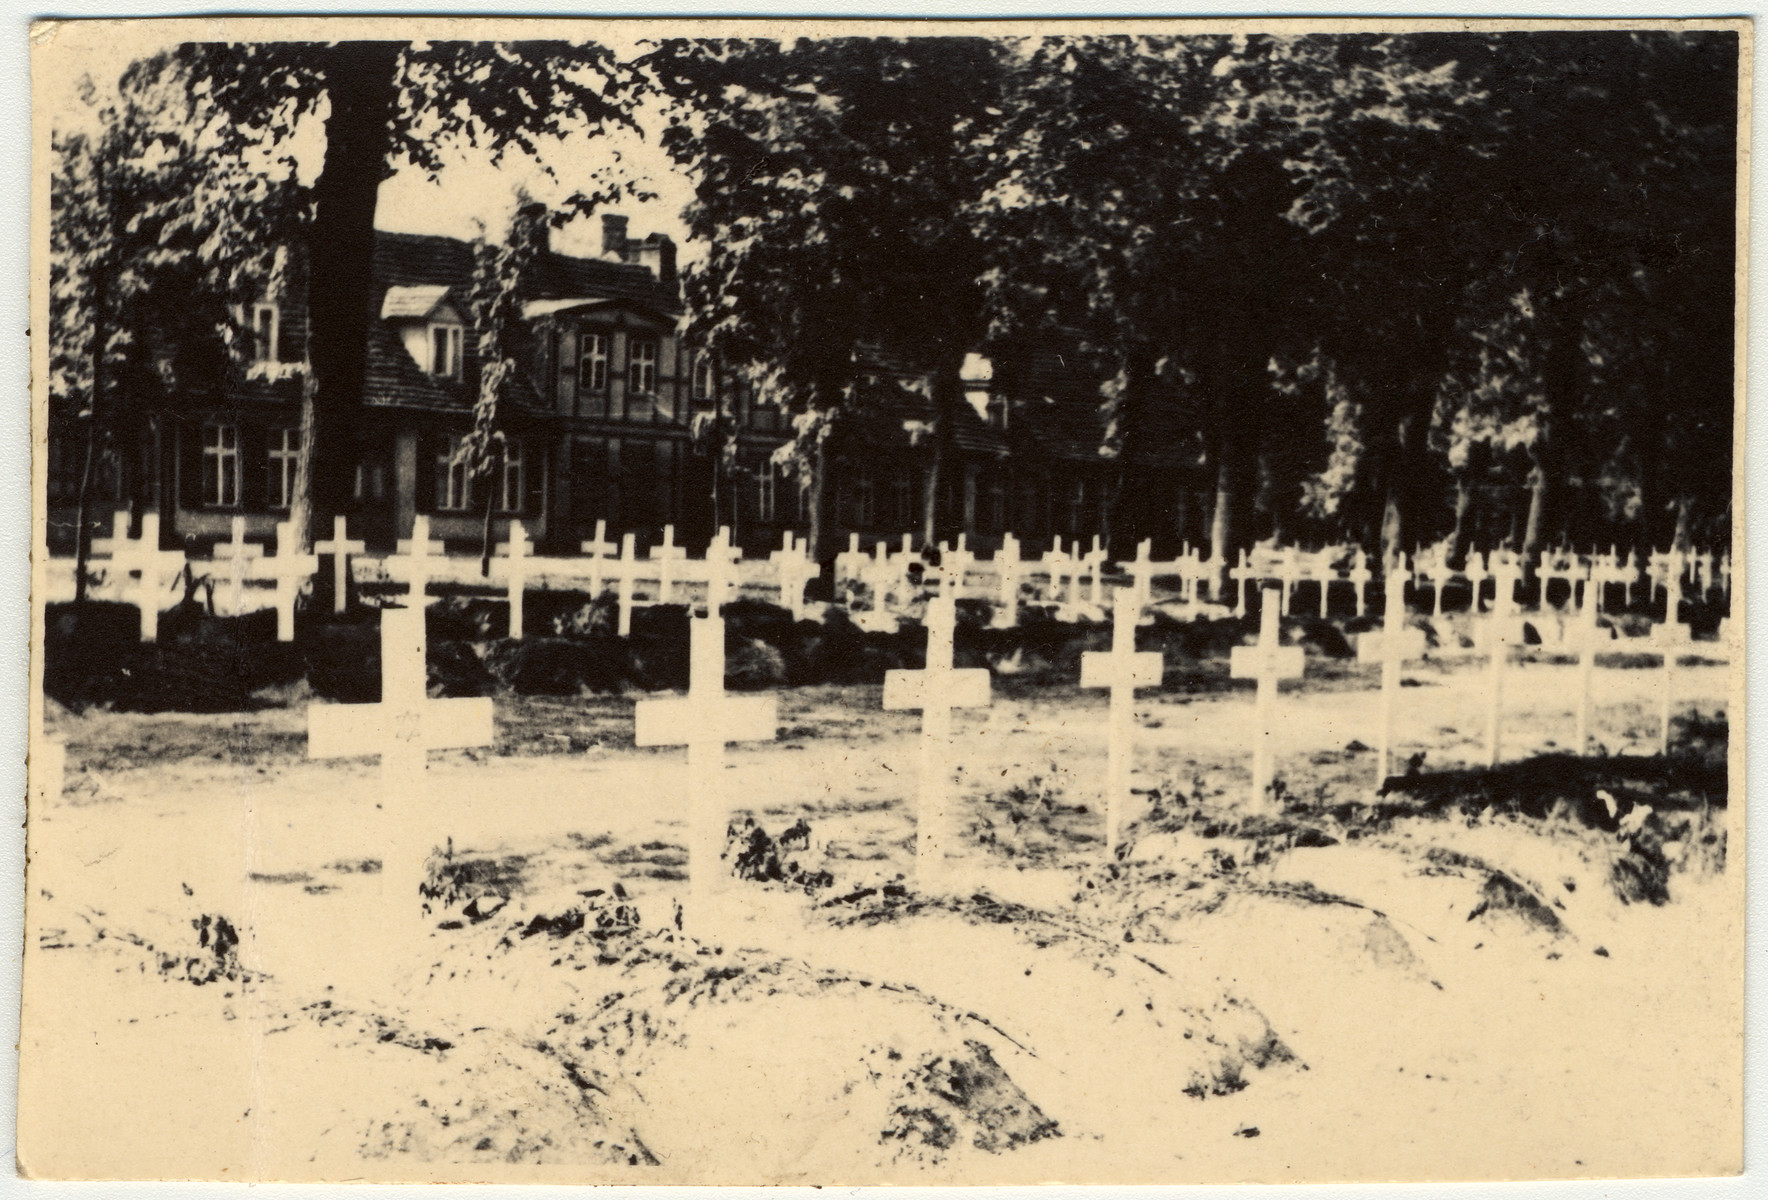 Graves dug by the people of Ludwigslust on the palace grounds of the Archduke of Mecklenburg.  German civilians were forced by U.S. troops to bury the bodies of prisoners killed in the Woebbelin concentration camp.